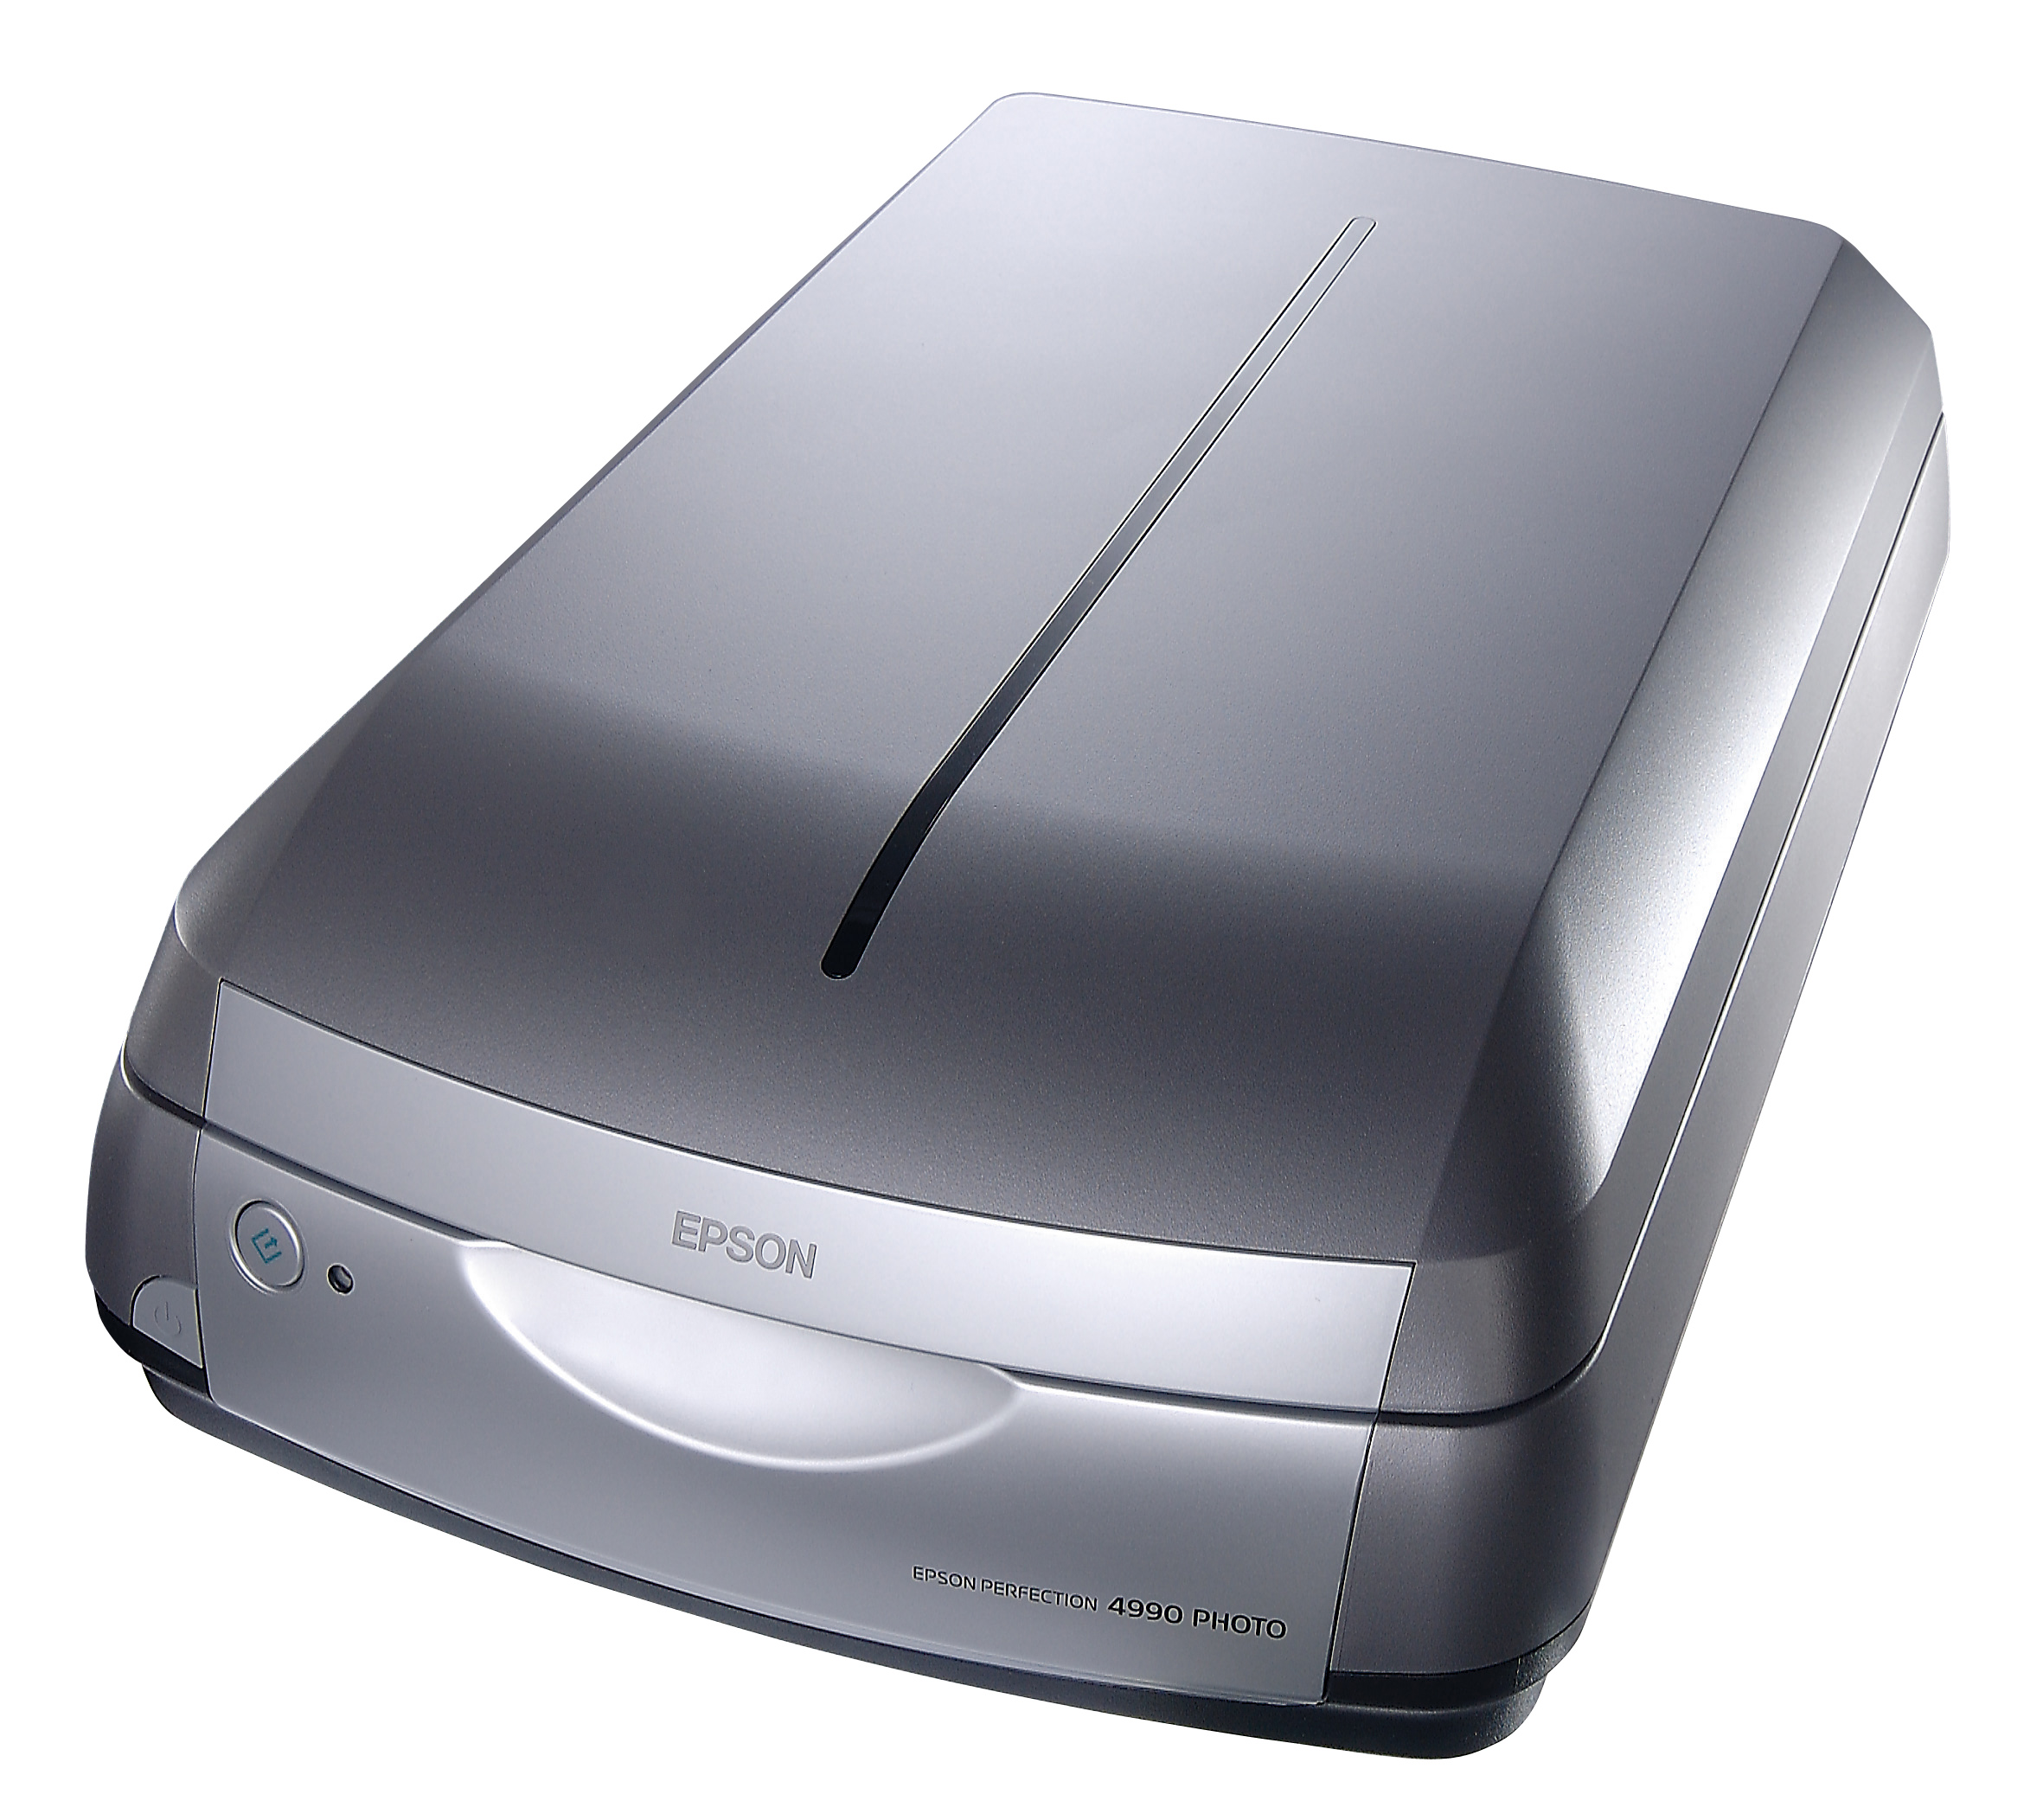 EPSON SCANNER PERFECTION 4490 WINDOWS 7 X64 DRIVER